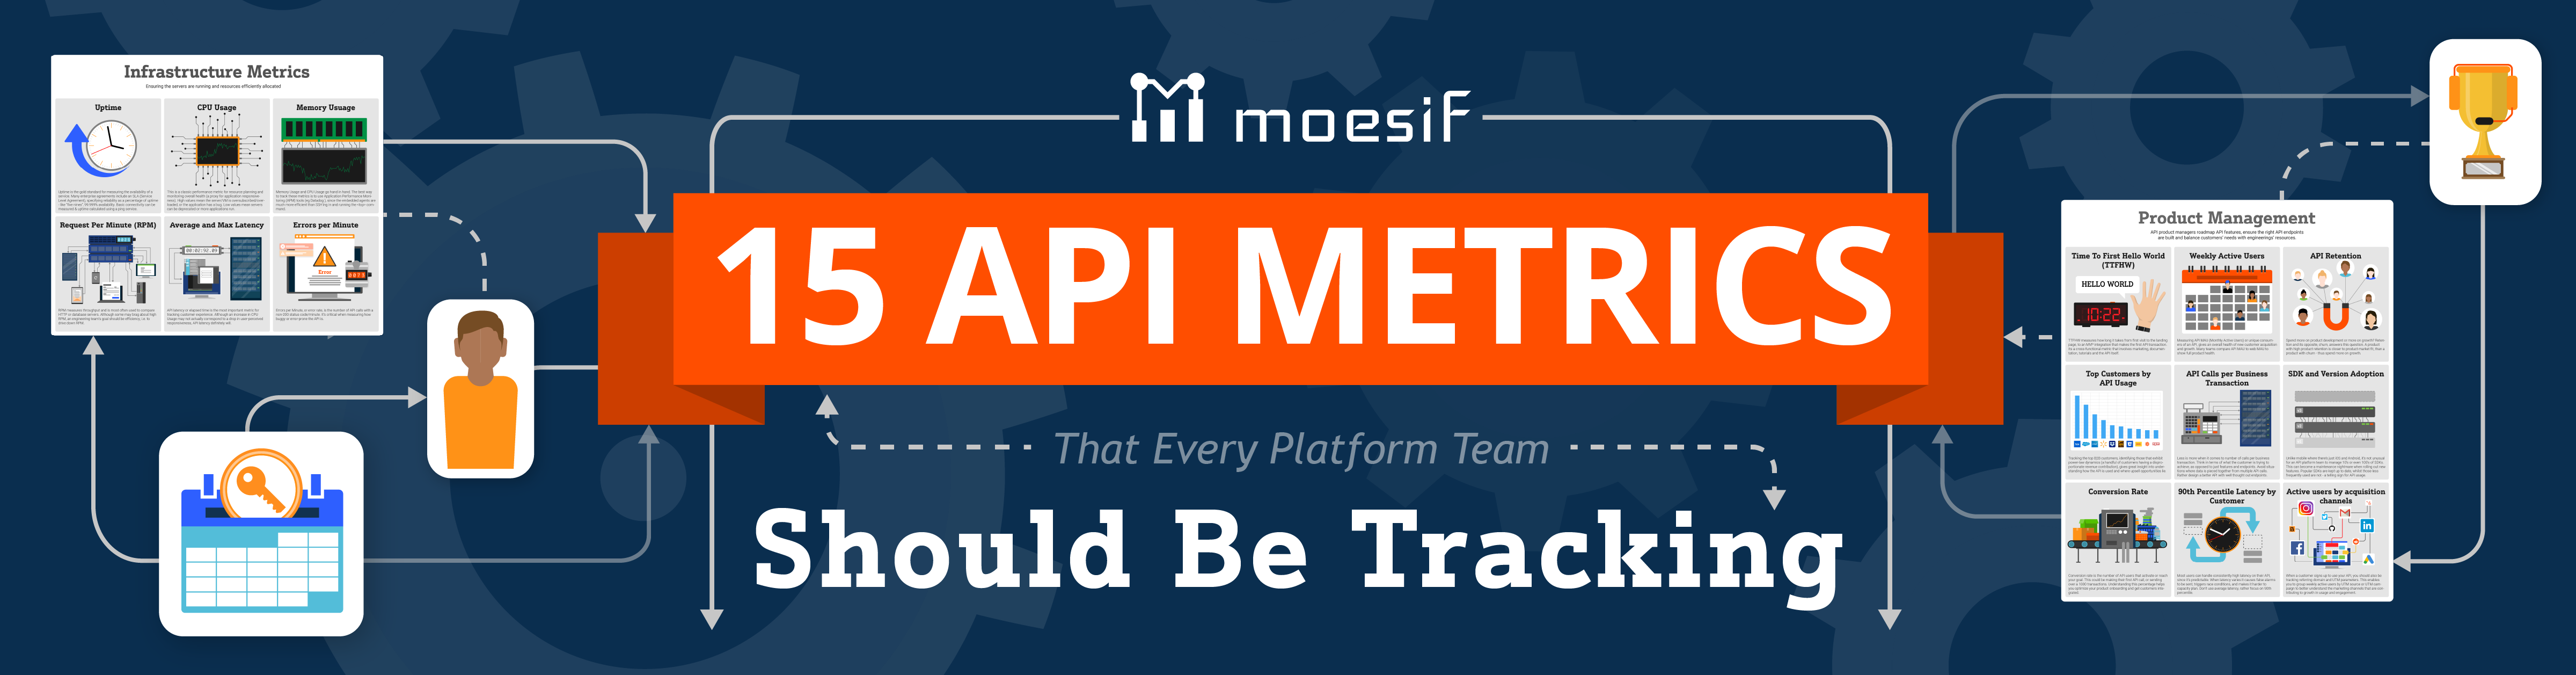 15 API Metrics That Every Platform Team Should be Tracking